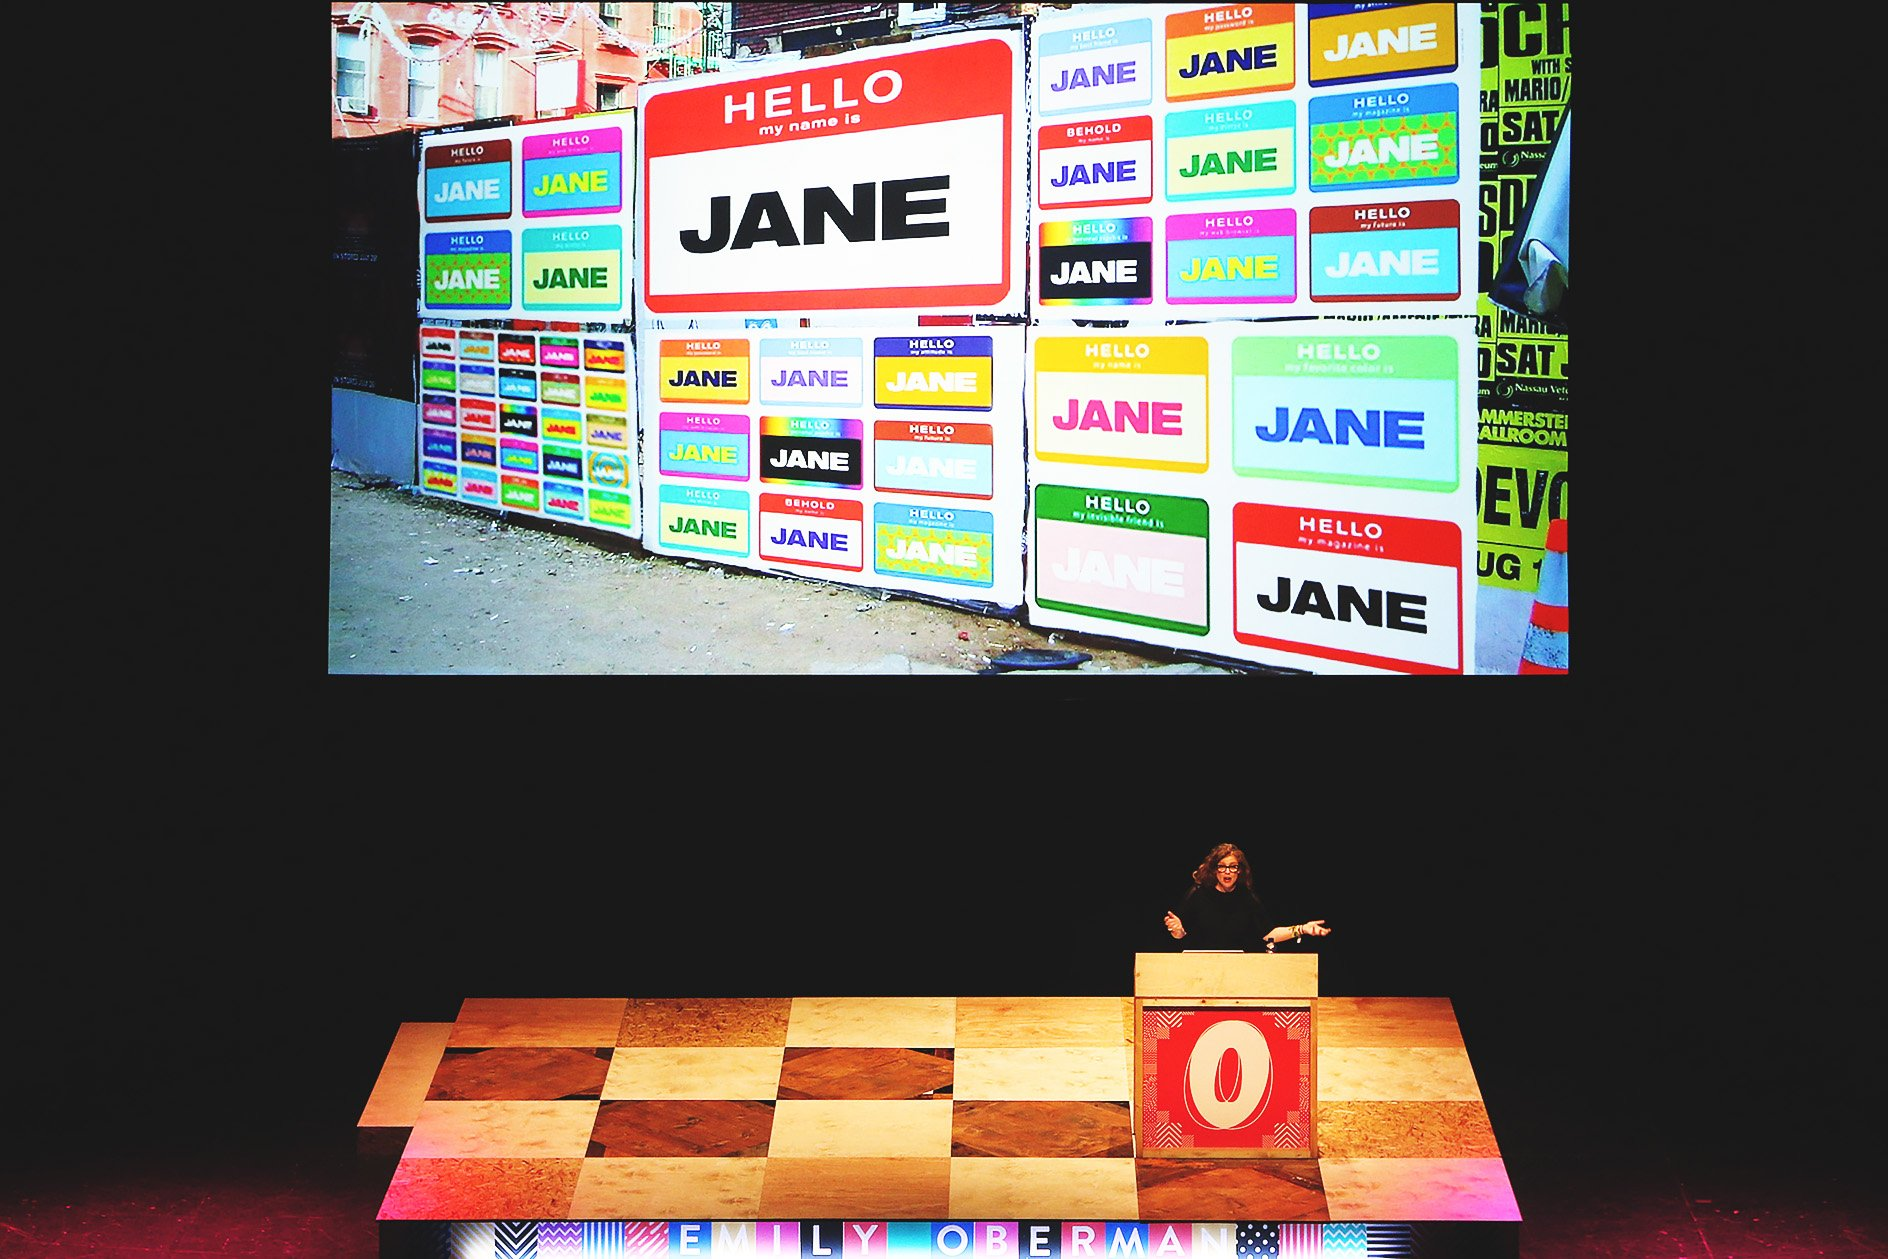 Emily Oberman at OFFSET 2015 – Hello my name is Jane